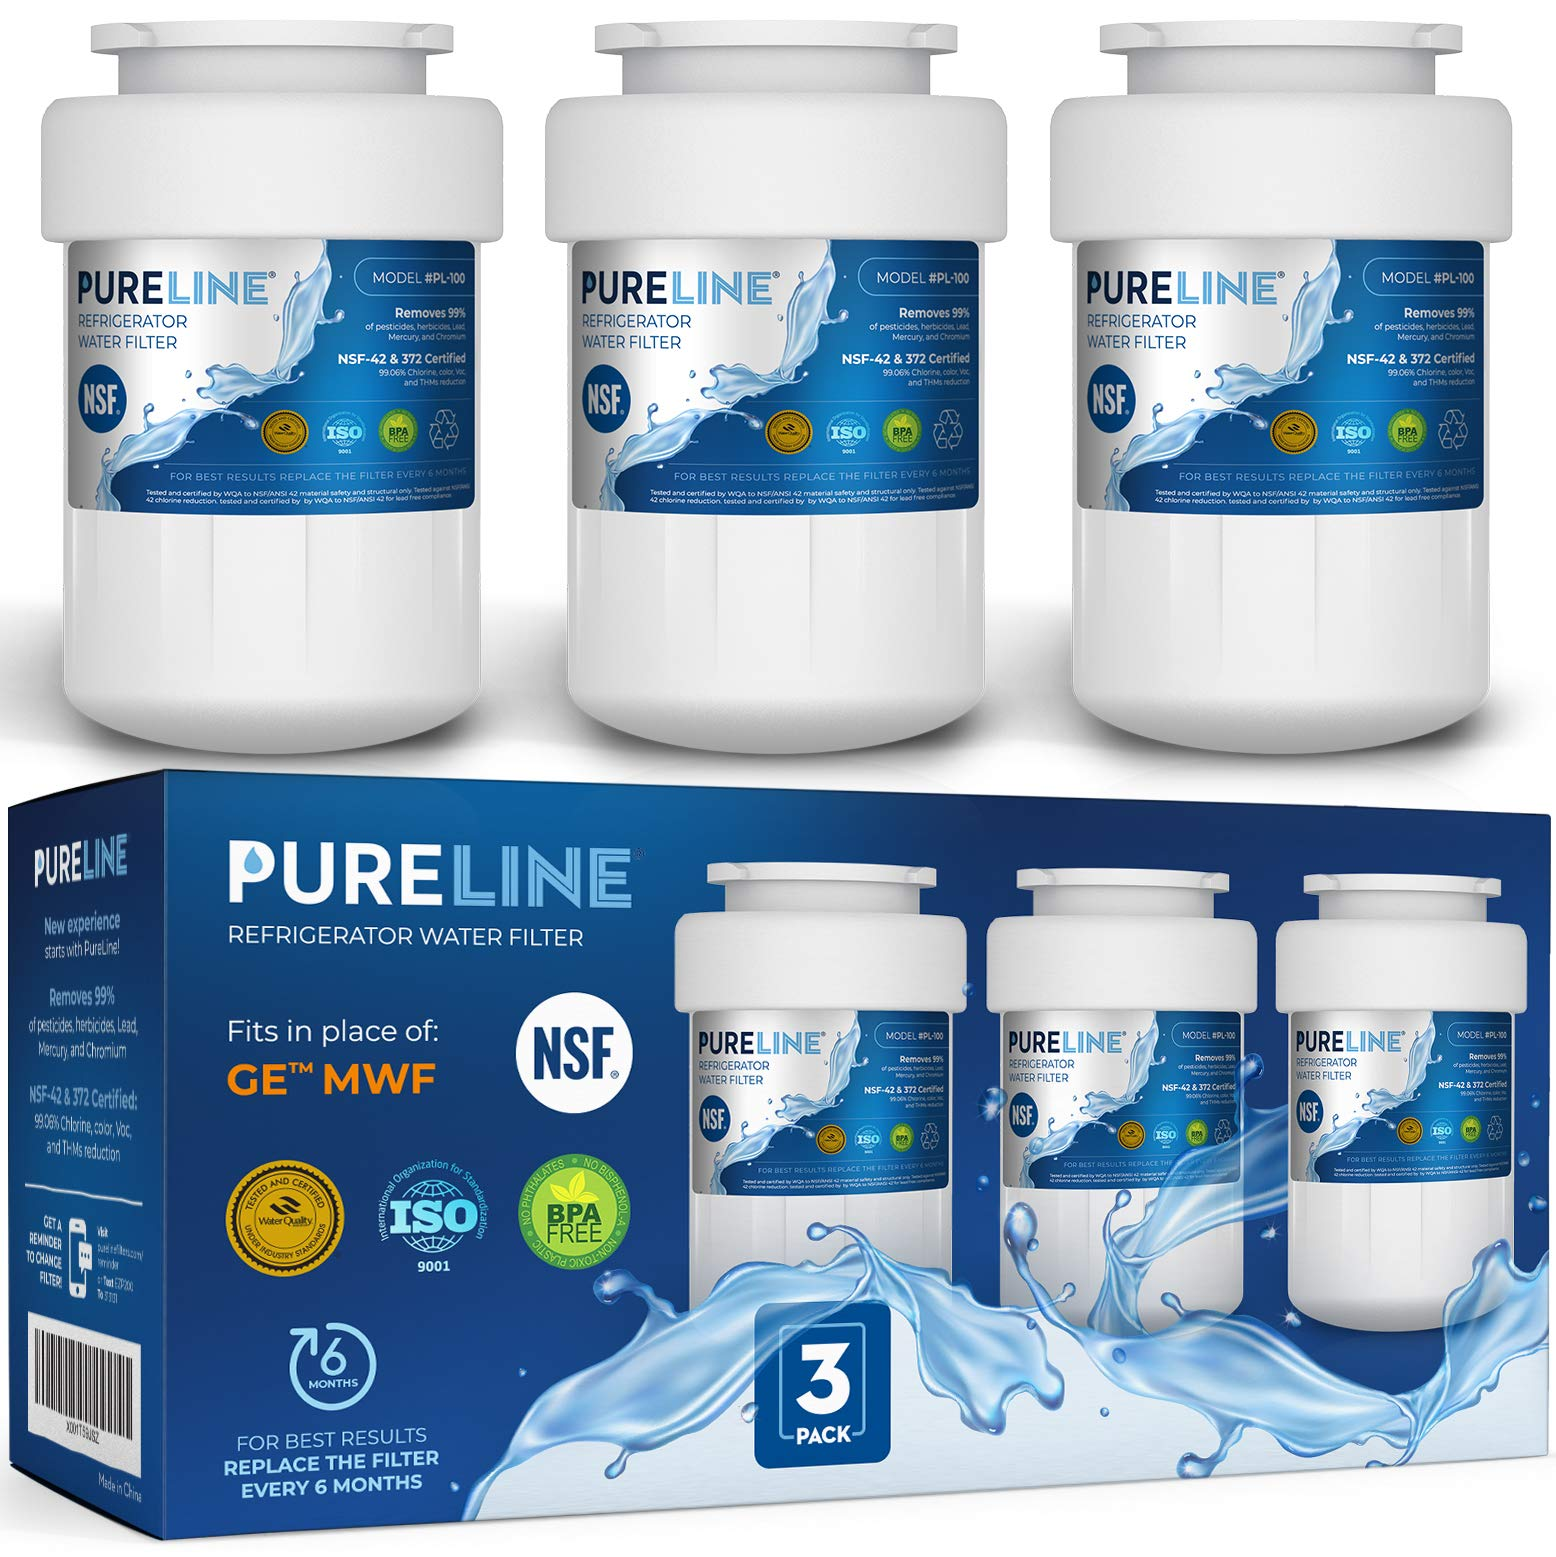 GE MWF Water Filter Replacement. Compatible GE Models: MWF, MWFA, MWFP, MWFAP, MWFINT, GWF, GWFA, HWF, HWFA, FMG-1, SmartWater, GSE25GSHECSS, 197D6321P006 -by PURELINE (3 Pack) by PURELINE